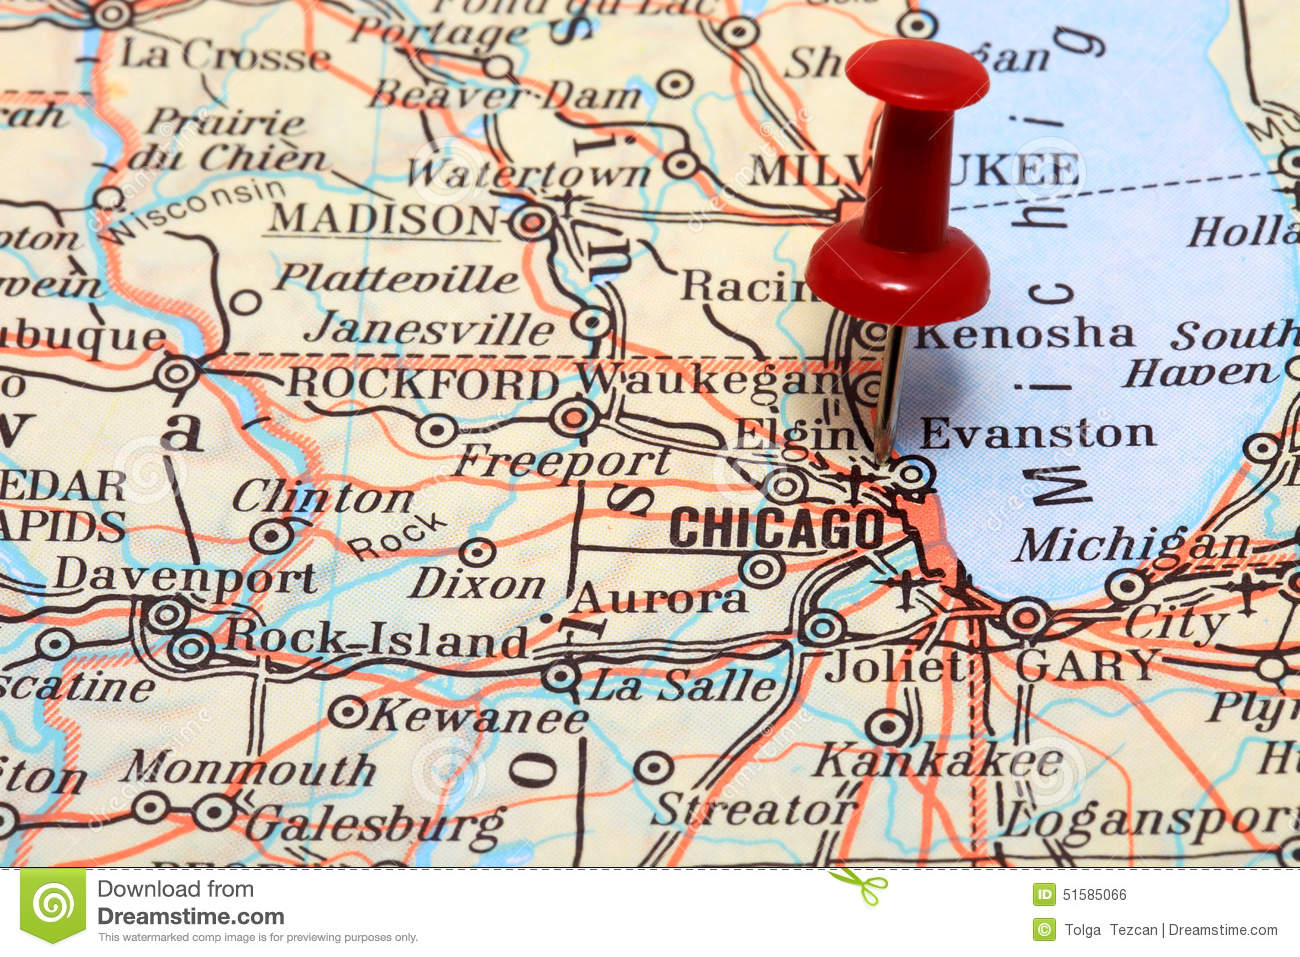 Chicago Illinois Usa Map Bnhspinecom - Chicago-on-the-us-map